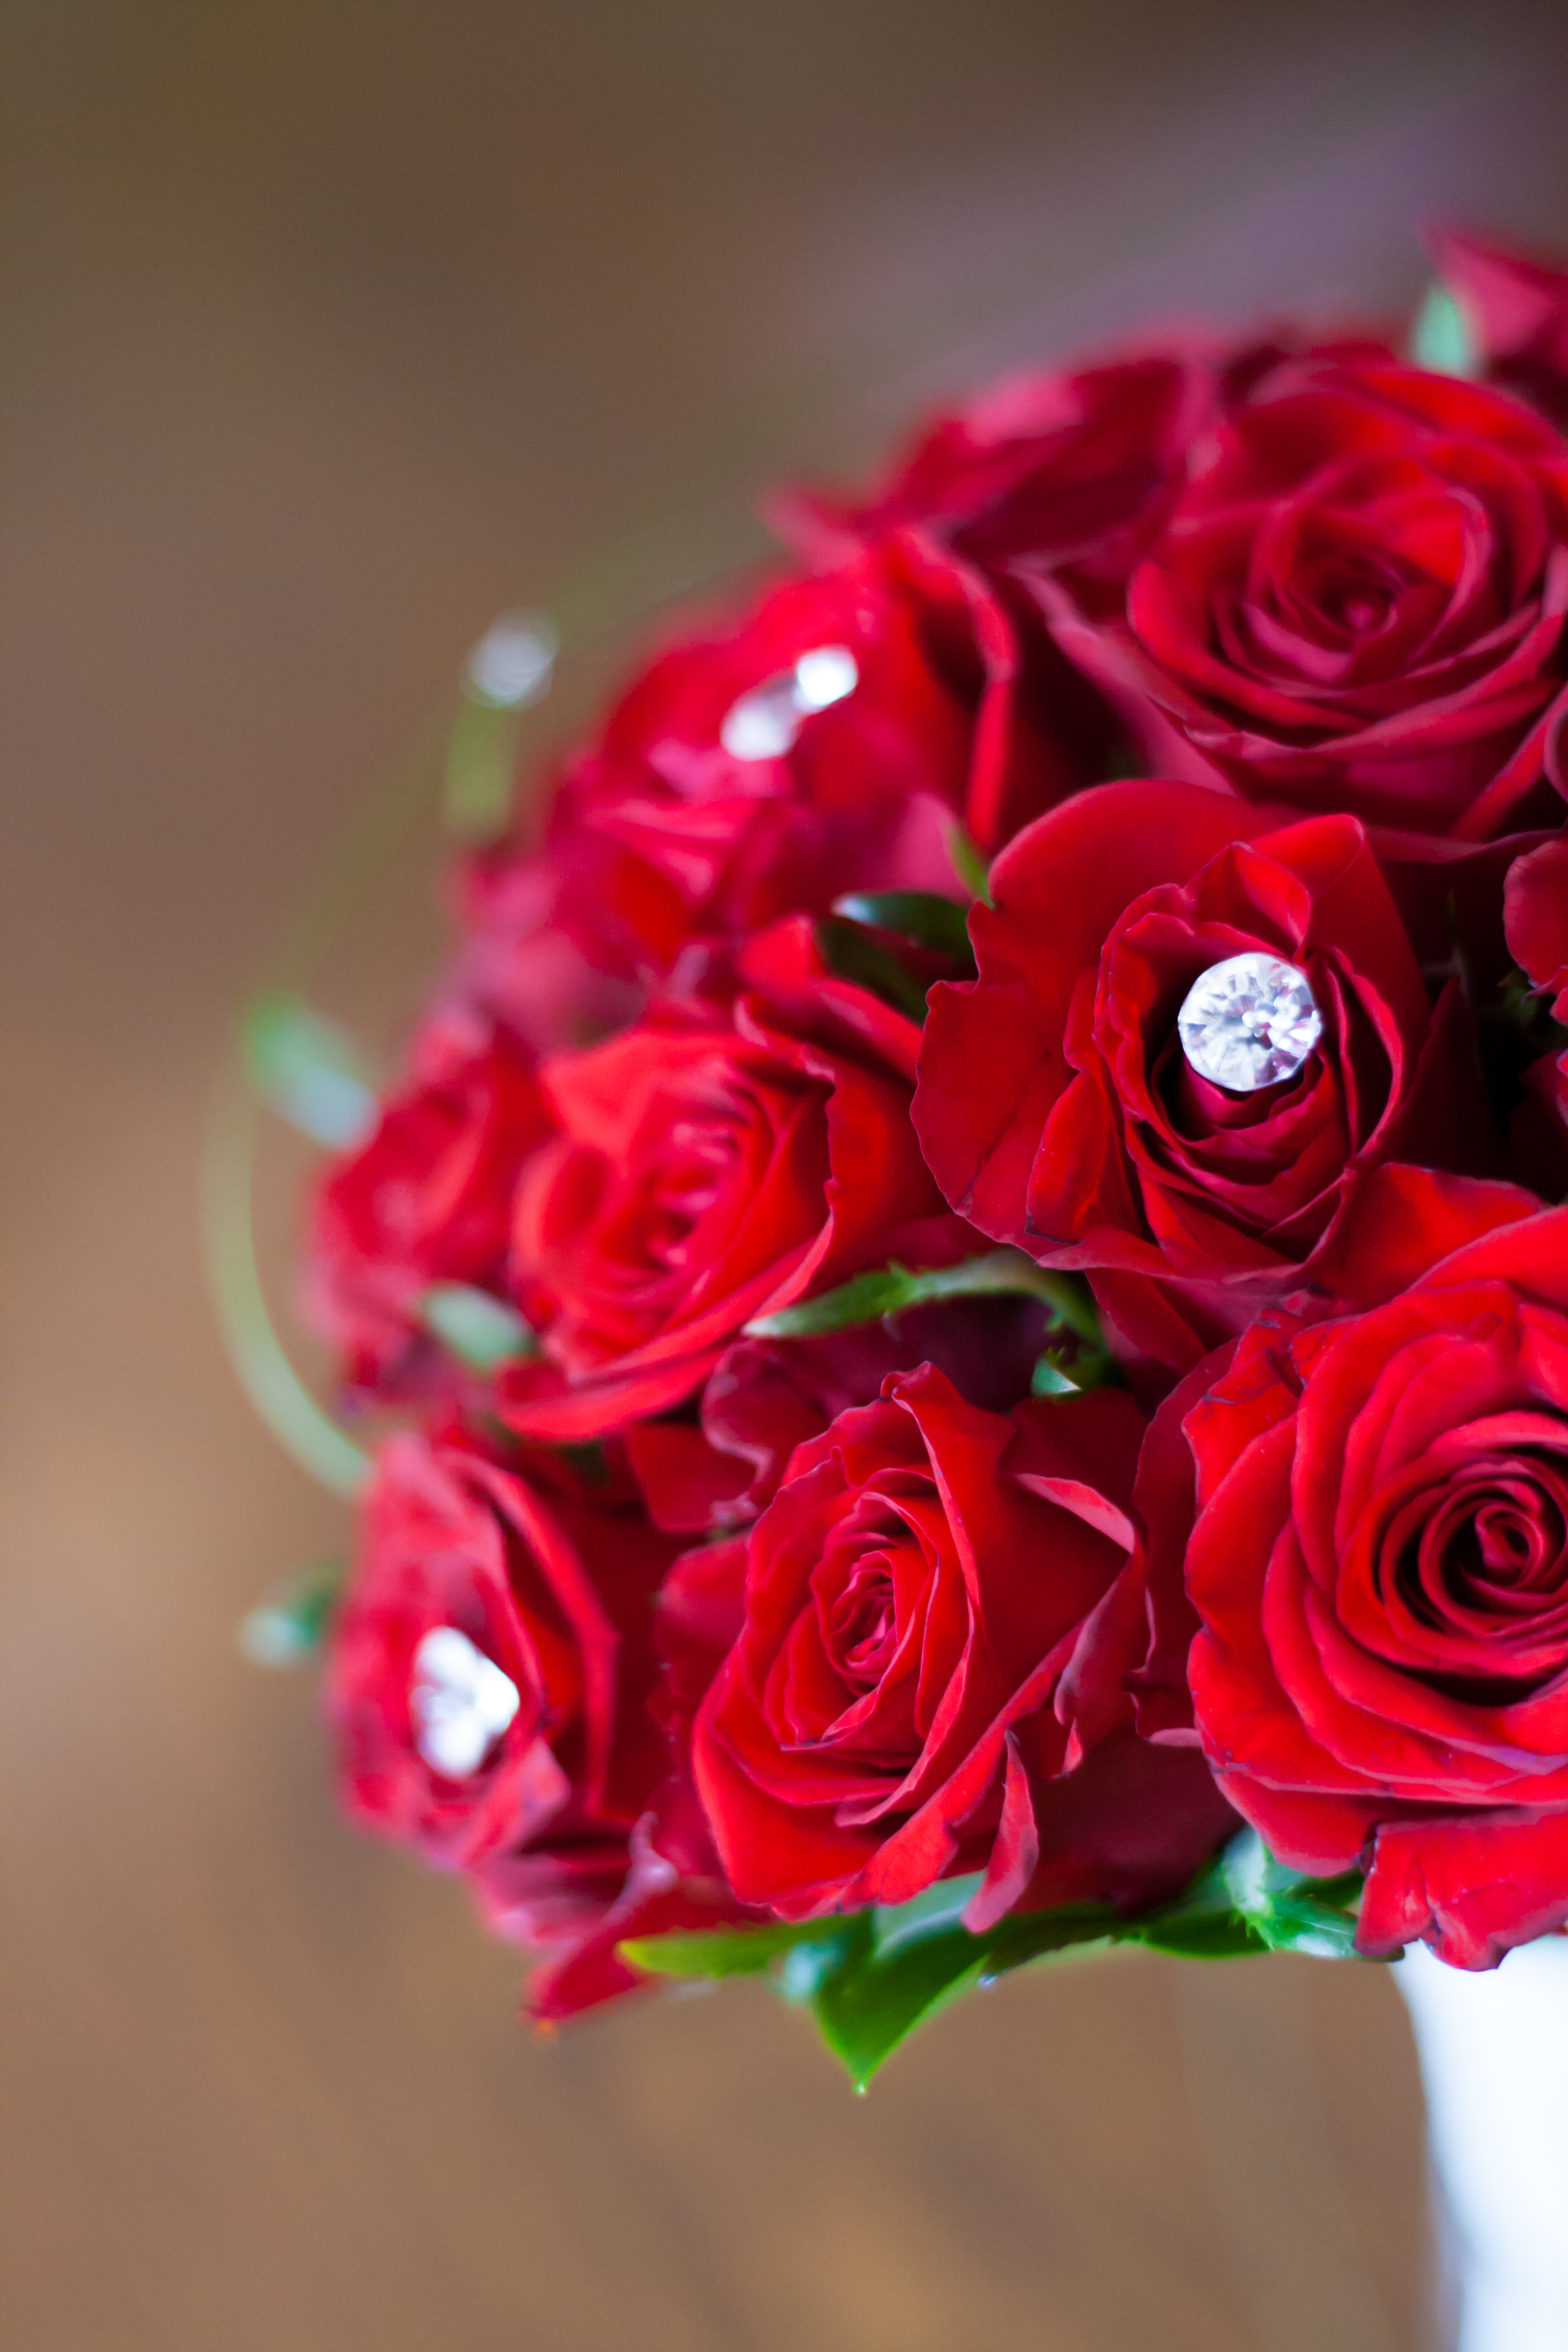 Bouquet of flowers pictures free image stock Red roses: bridal bouquet · Free Stock Photo image stock